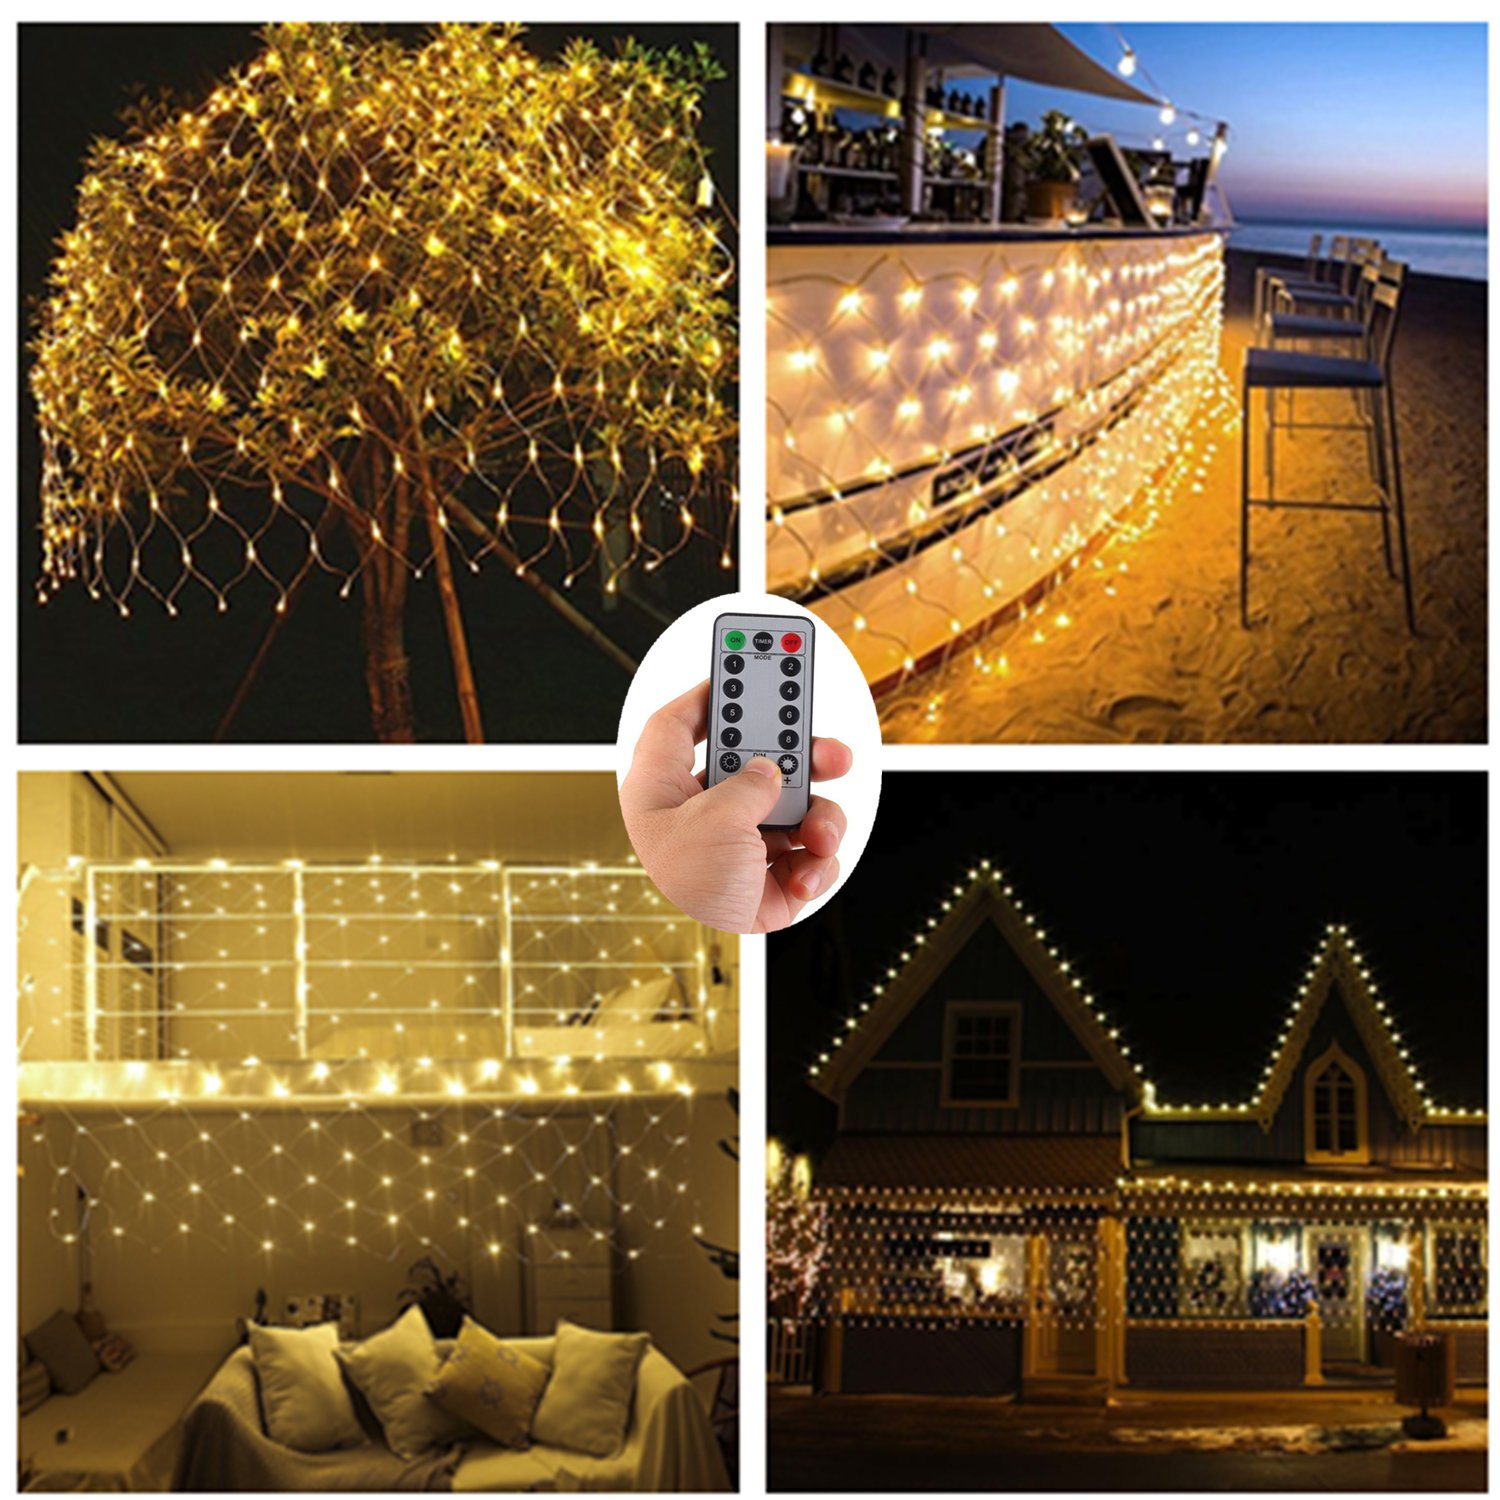 Battery Operated Led Net Mesh Lights,9.8ft x 6.6ft 200 Warm White LEDs,Outdoor String Decorative Lights for Window Wall Sweetheart Table Background Camping Beach [Remote,8 Mode,Timer,Dimmable]